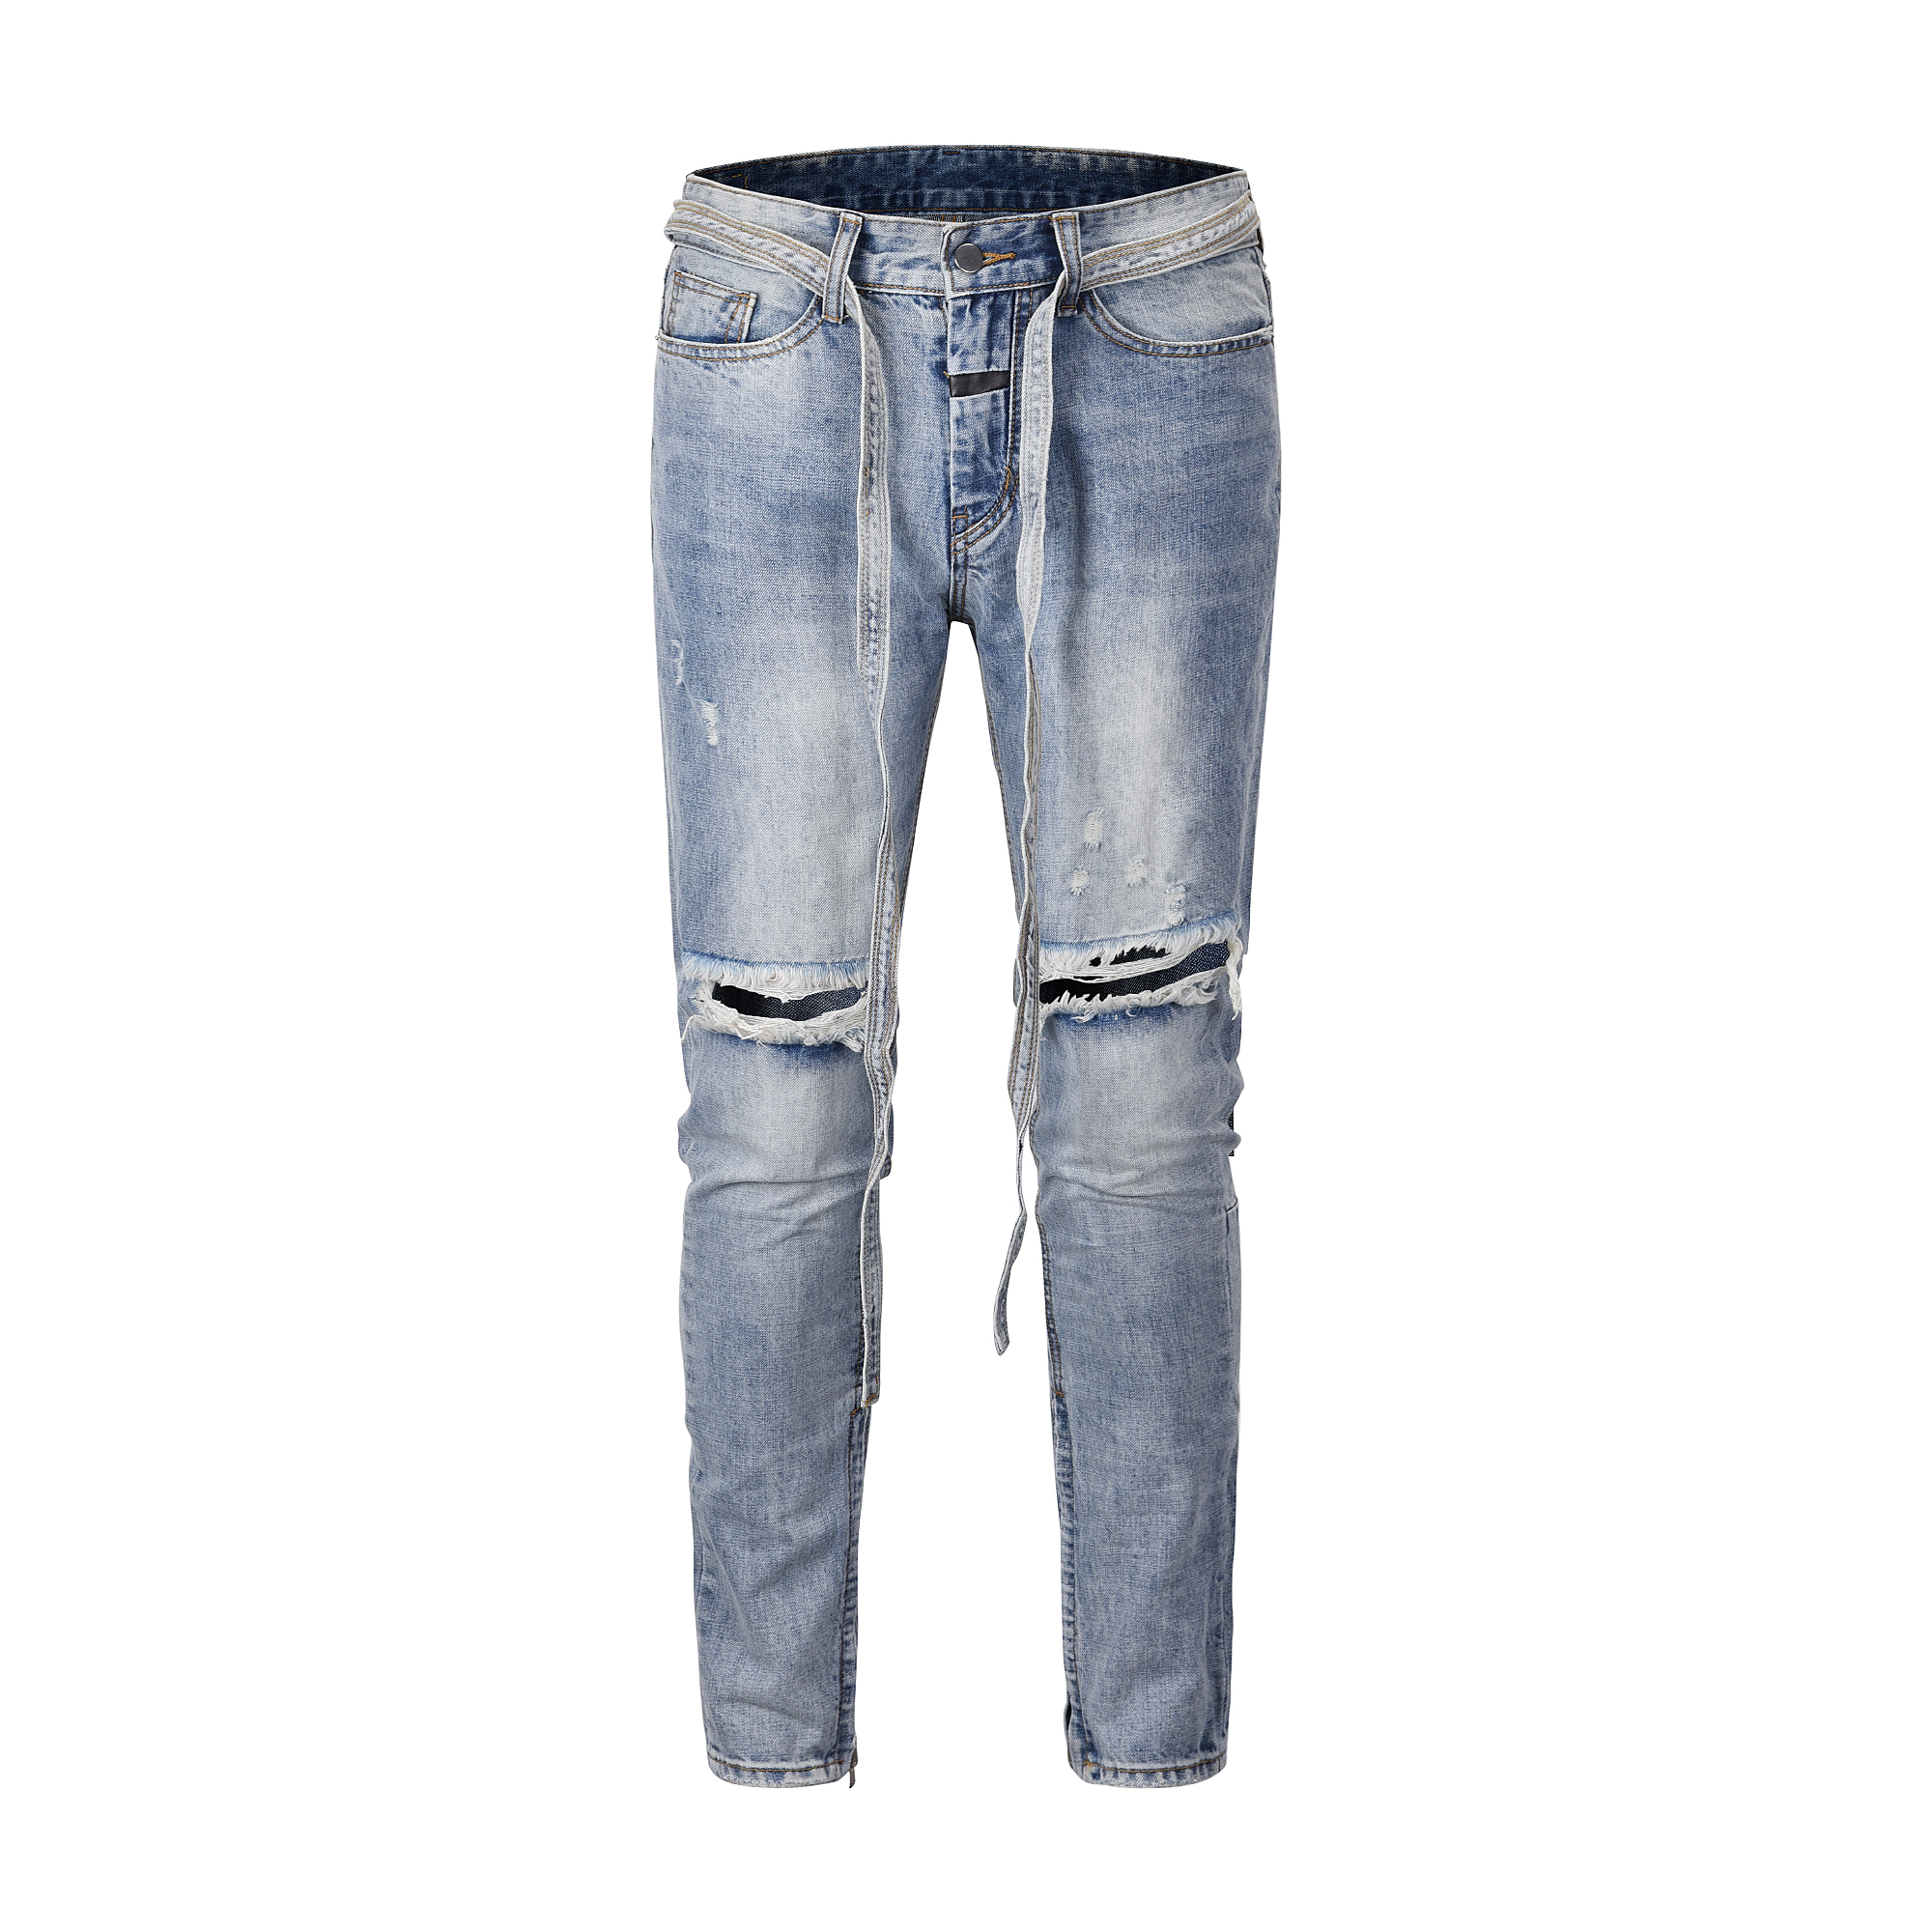 QoolXCWear High Street Jeans Men Hole Damaged Distressed Blue Jeans Ankle Zipper Long Denim Belt Jeans Men  Pants